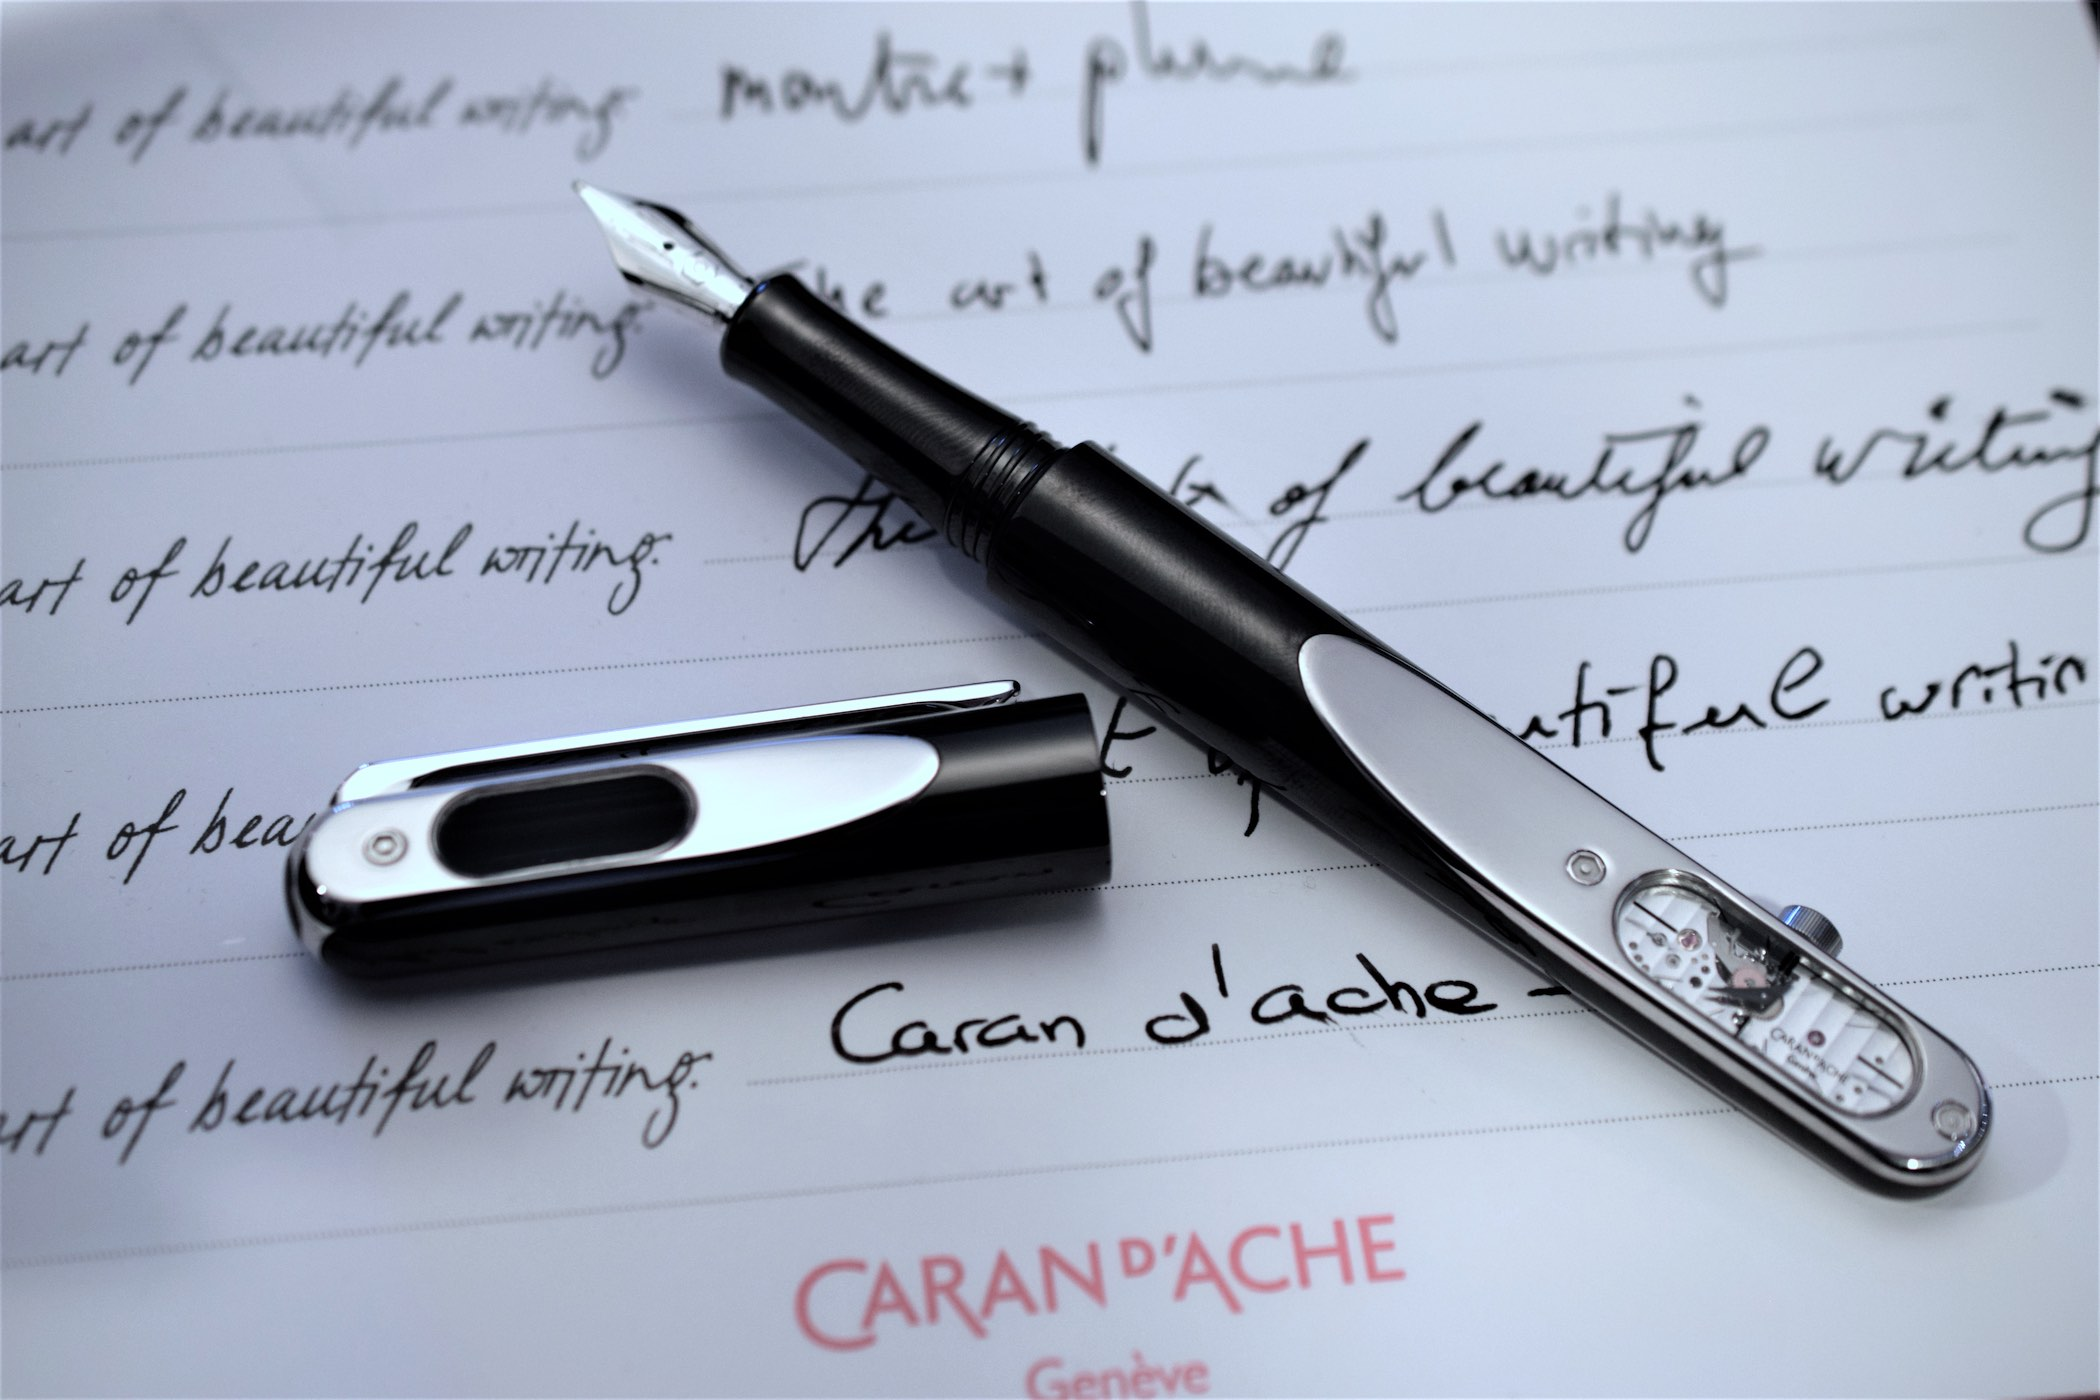 Caran d'Ache Timegraph - Fountain Pen With Mechanical Movement